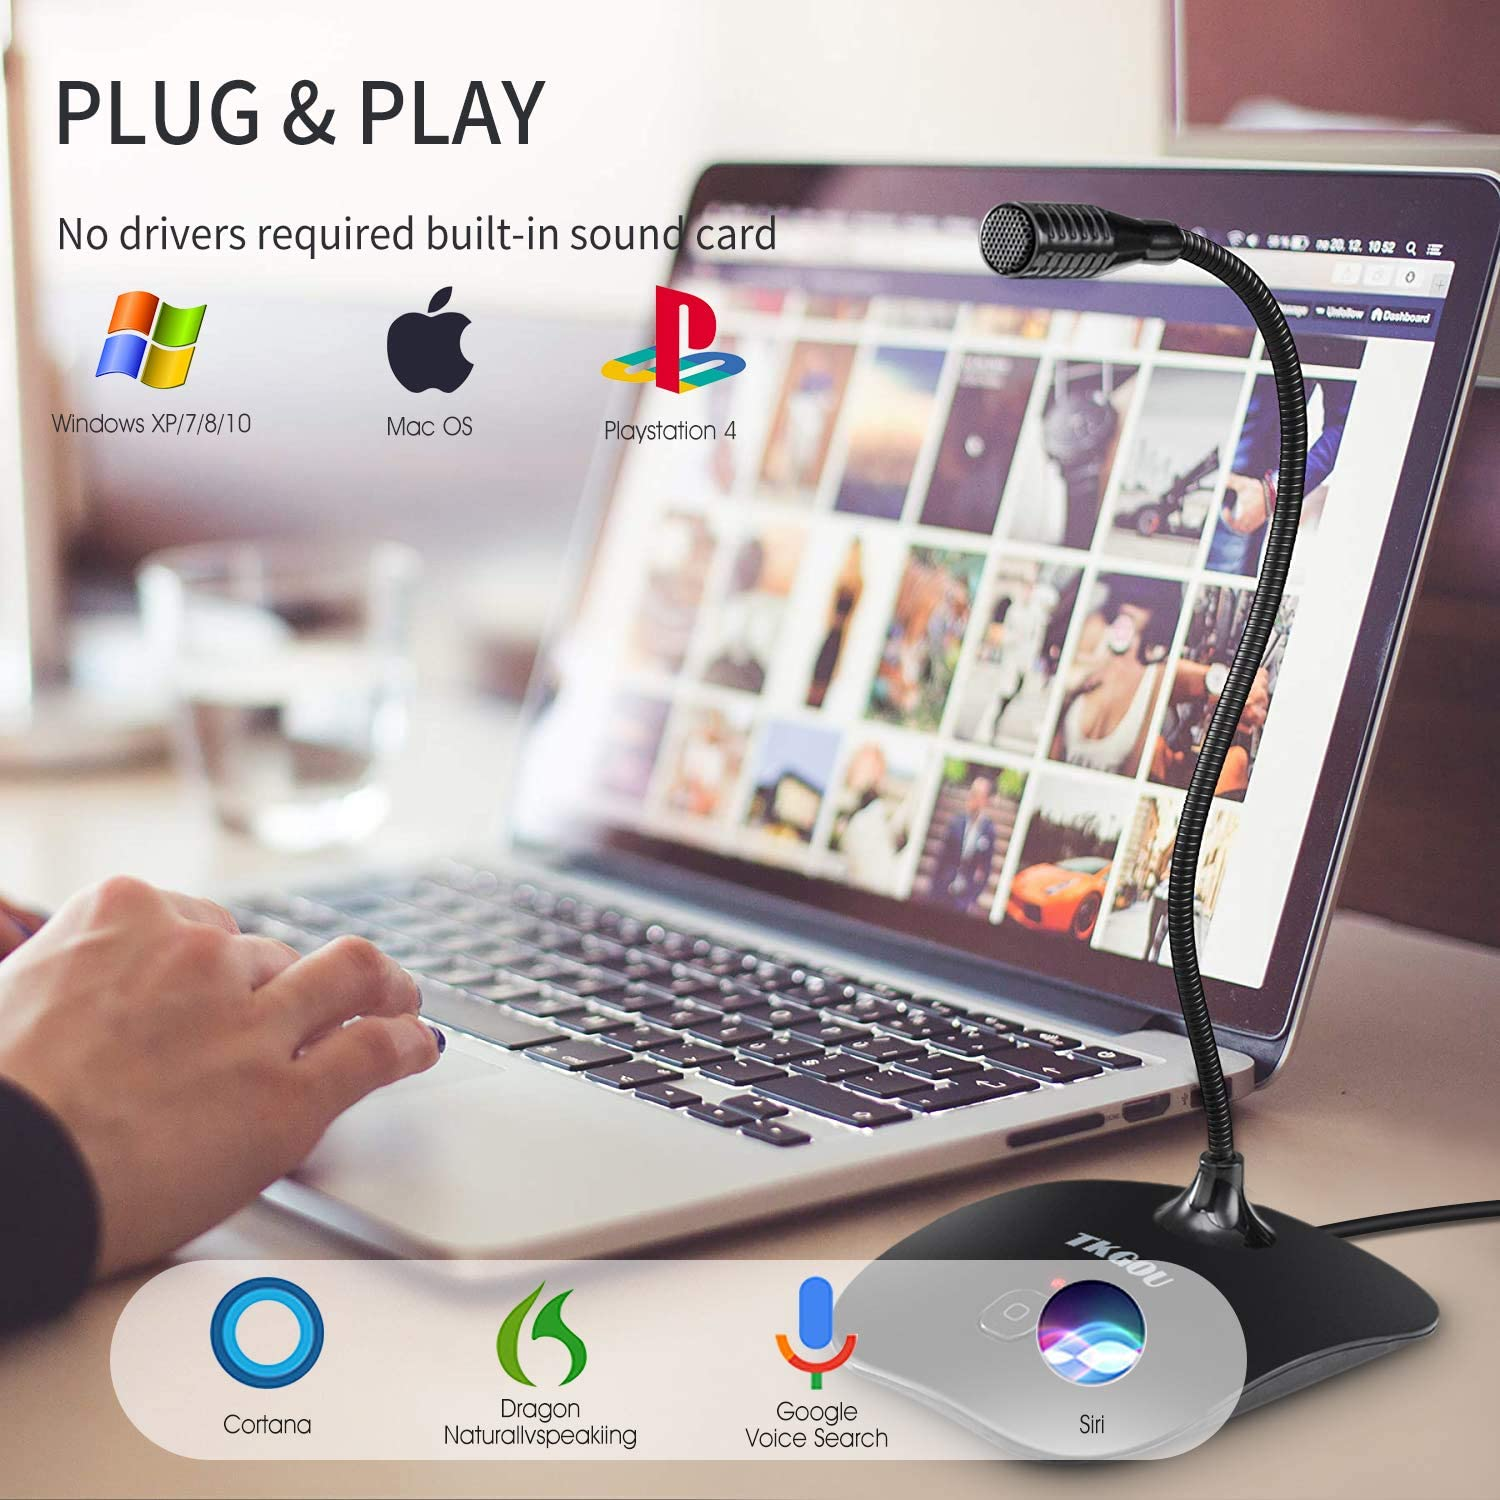 TKGOU USB Microphone for Computer - Plug&Play Recording Microphone with Mute Button - Compatible with PC, Laptop, Mac, ps4 - Ideal for YouTube,Skype,Gaming,Podcast(1.5m /5ft)